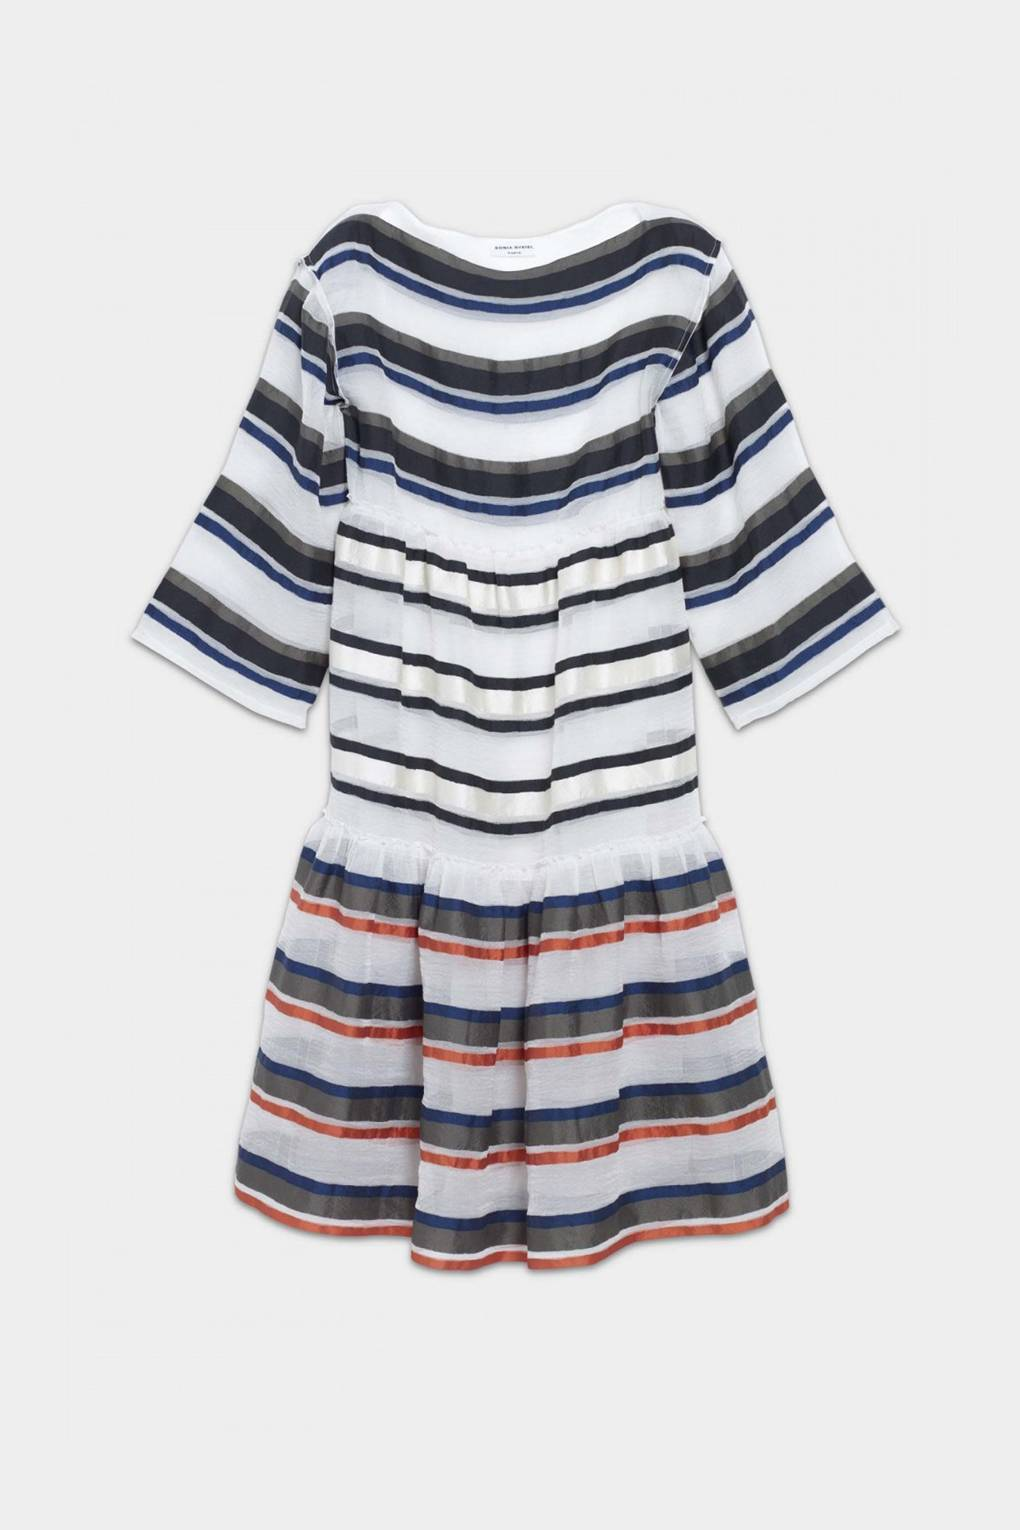 68bfd06c7bb6c Summer dress style and inspiration updates | British Vogue